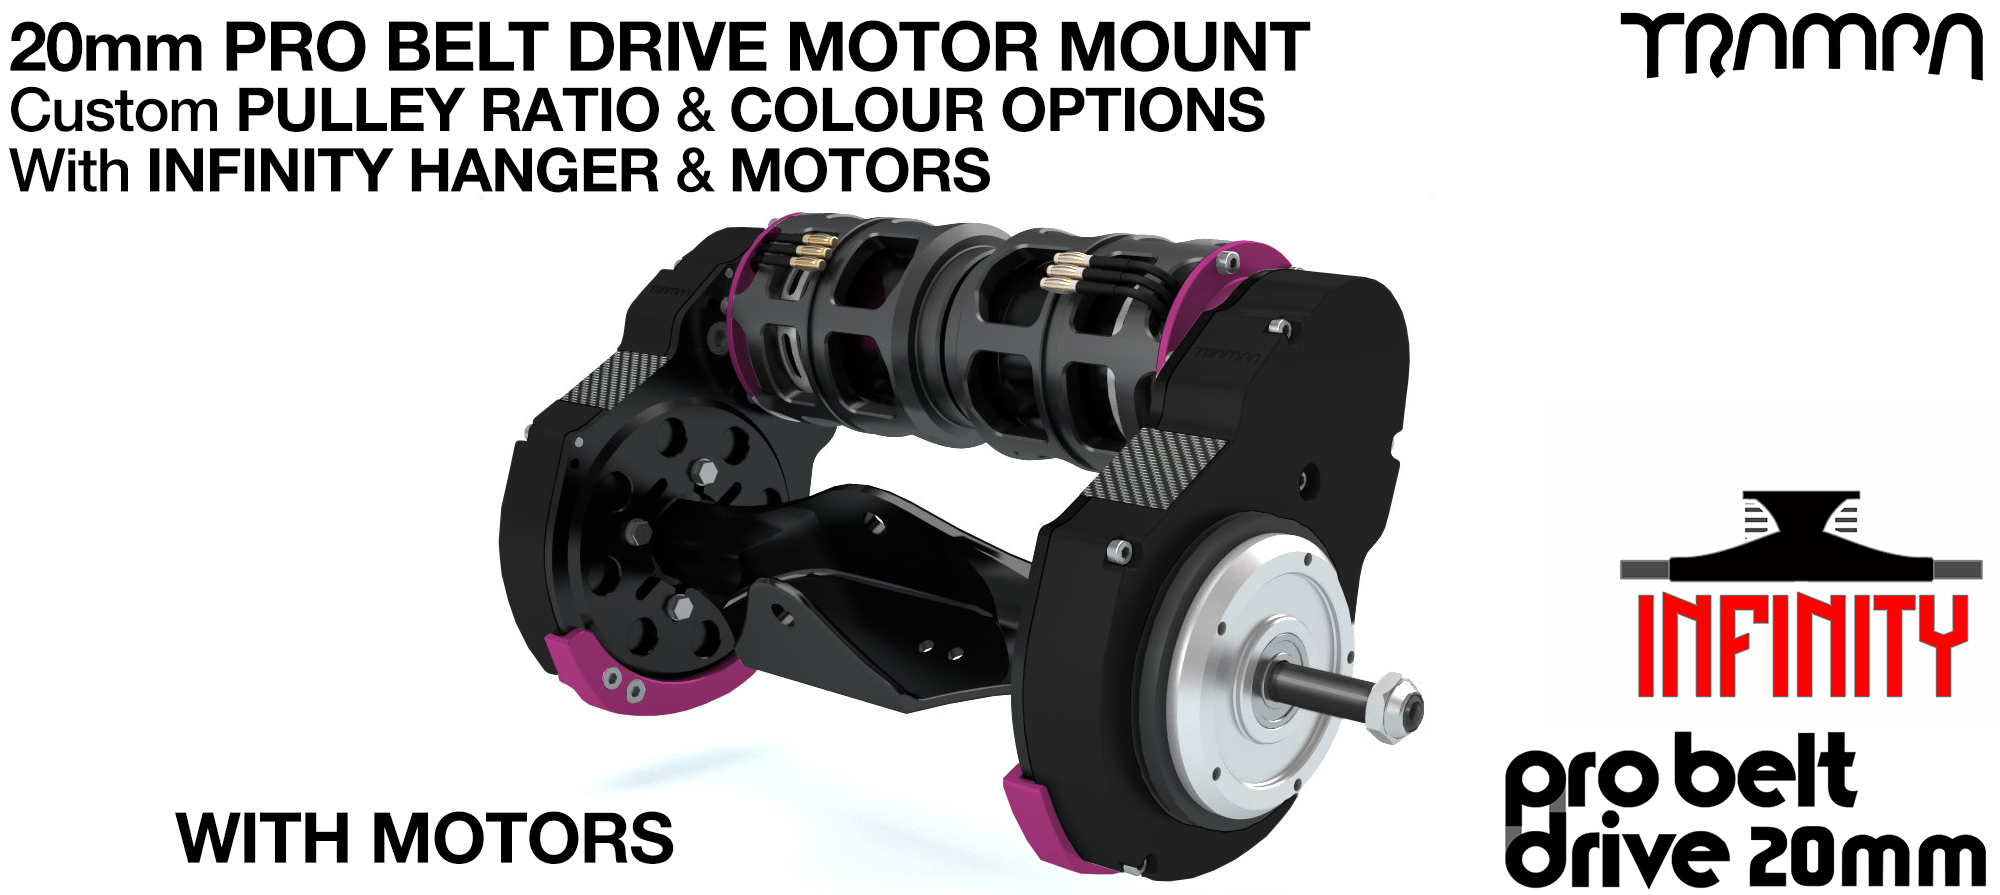 TRAMPA's 16mm  PRO Belt Drive TWIN Motor Mountainboard WITH Motors Mountred on a Precision INFINITY Hanger